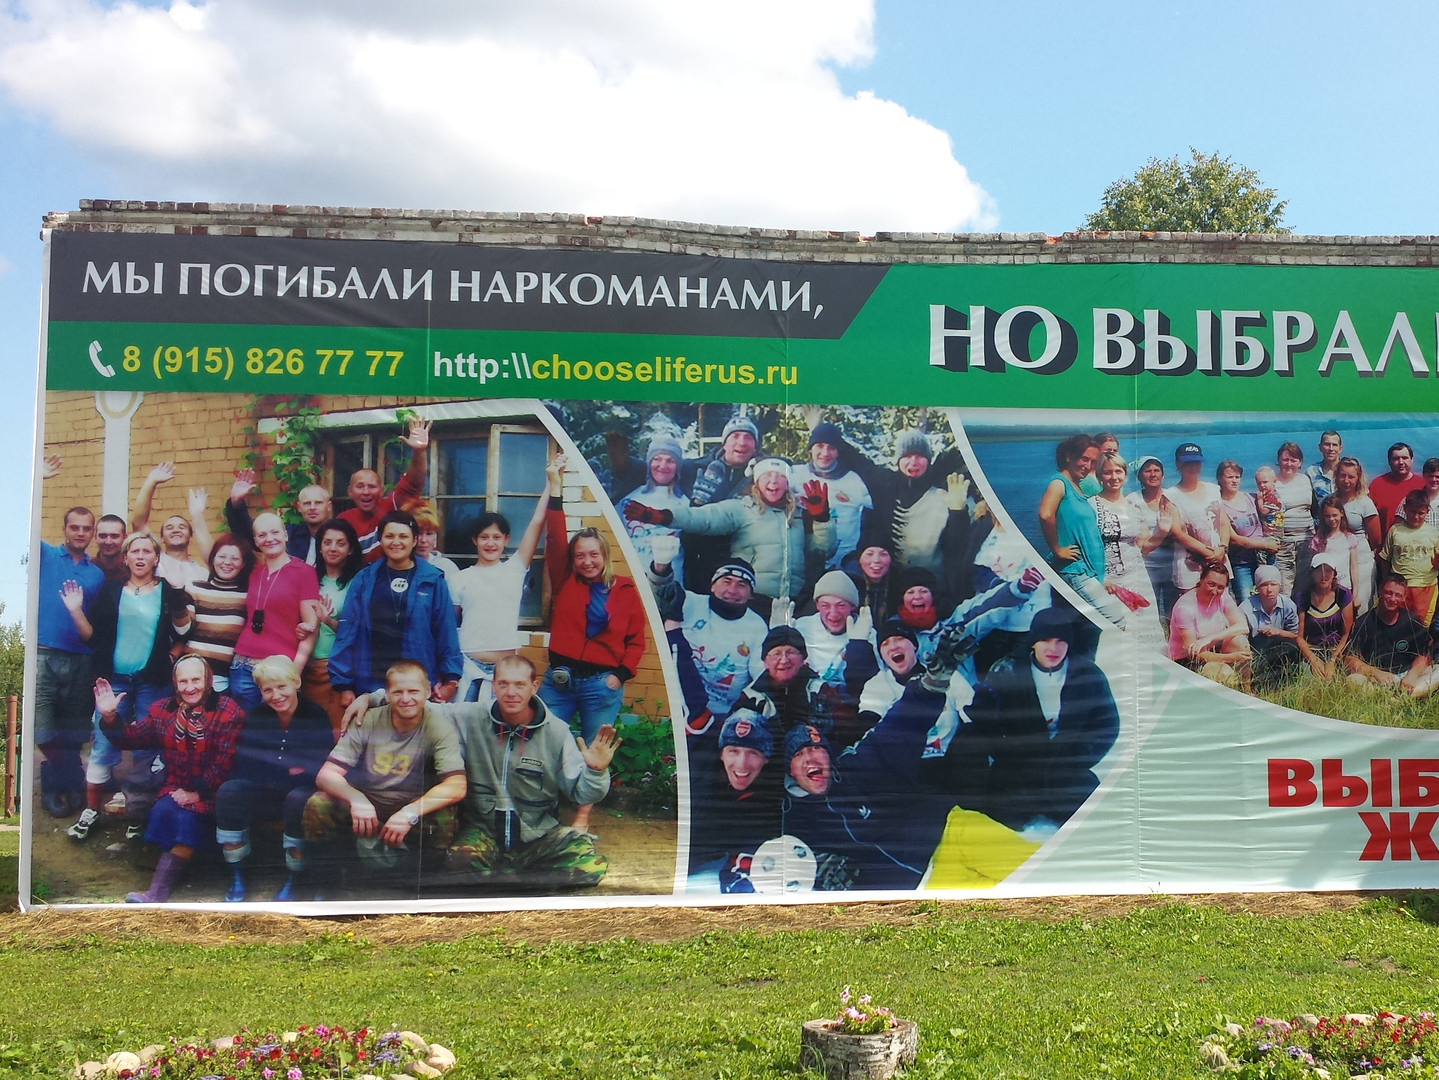 Youth mission in Russia